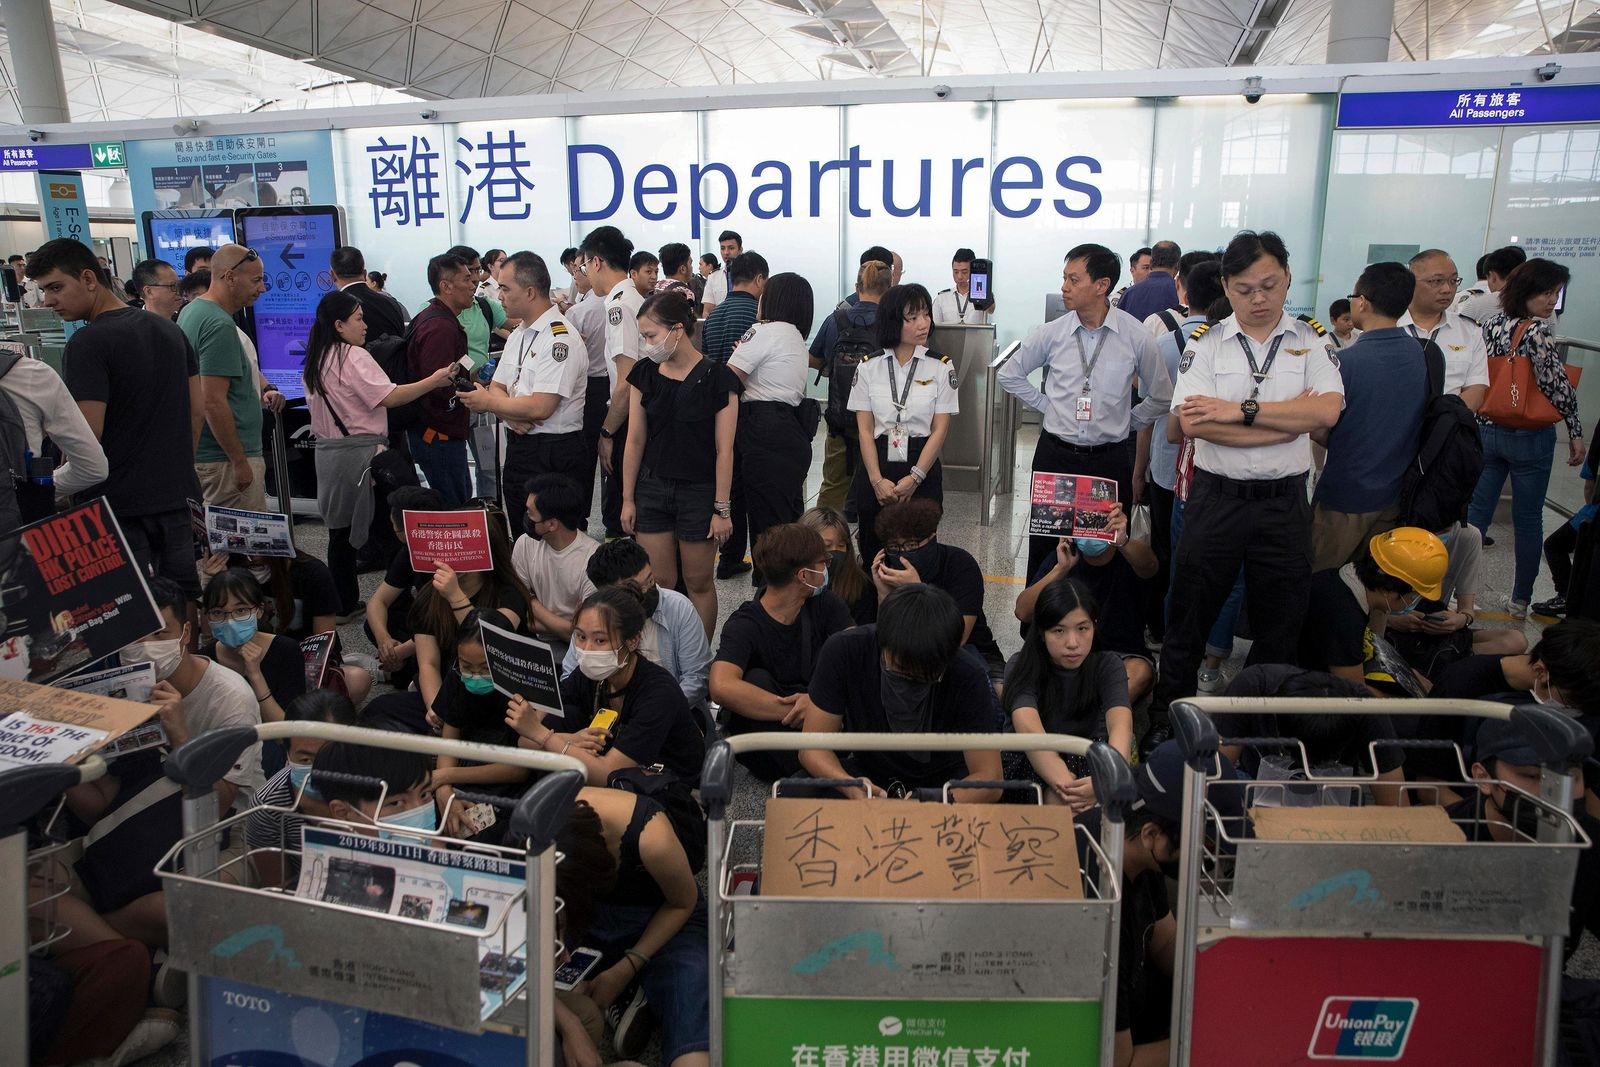 Airport security personnel stand guard as travelers walk past protesters holding a sit-in rally at the departure gate of the Hong Kong International Airport in Hong Kong, Tuesday, Aug. 13, 2019 (AP Photo/Vincent Thian)